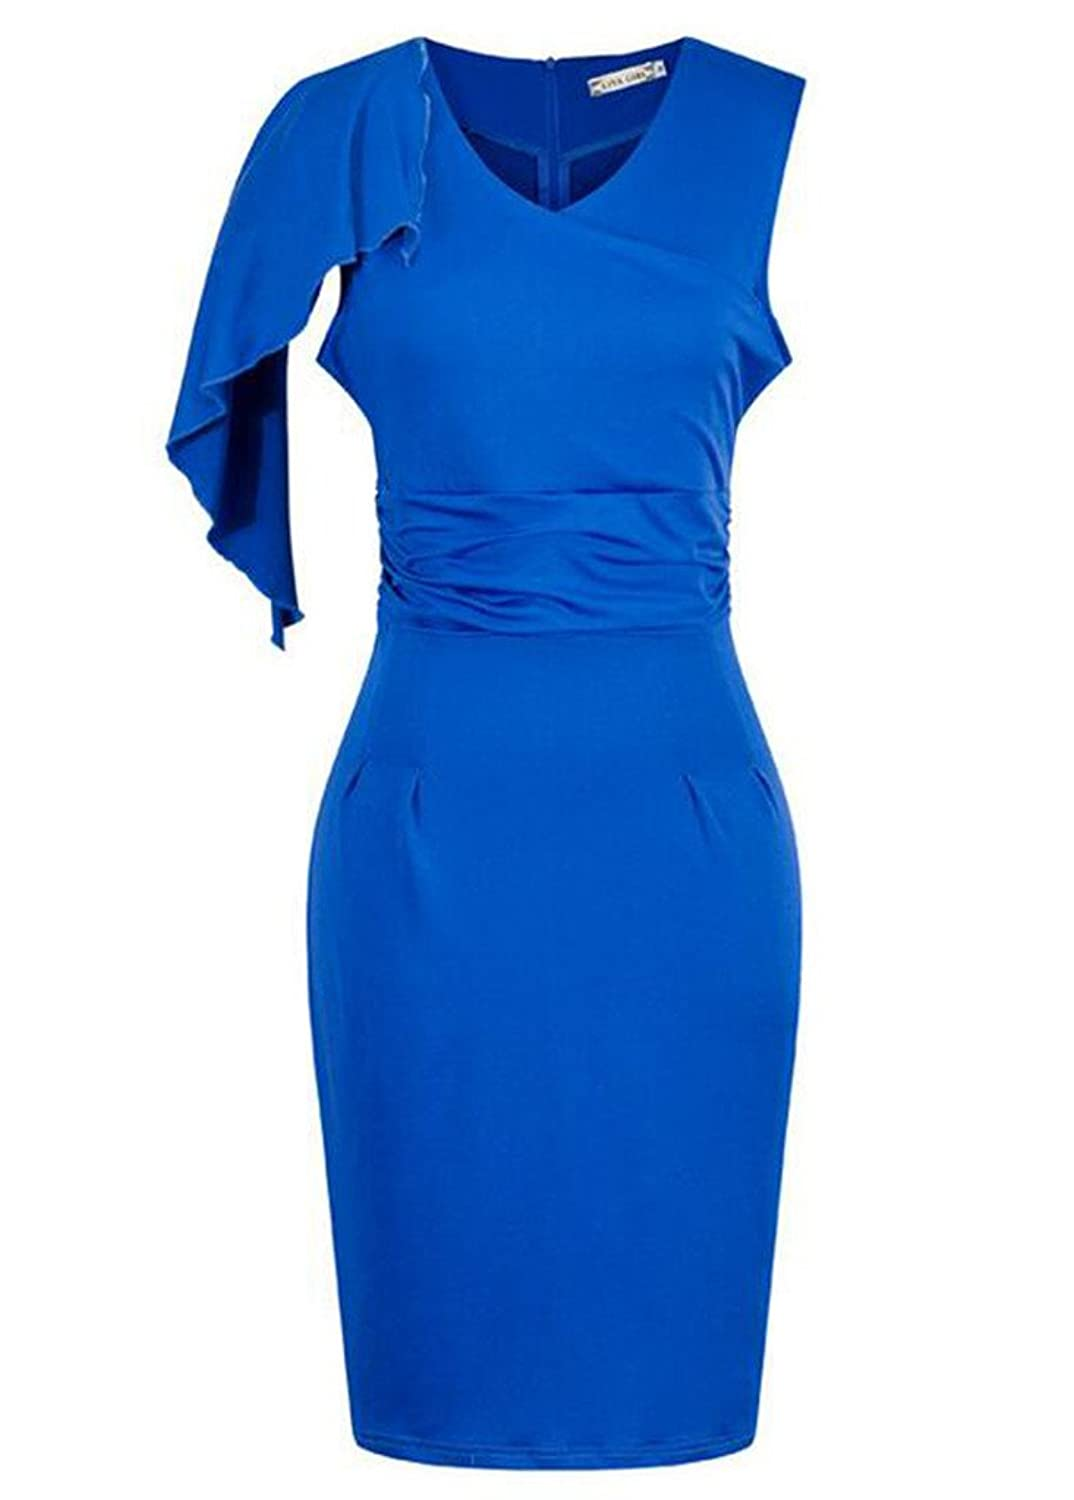 J-SUN-7 Women's Elegant Evening Dress